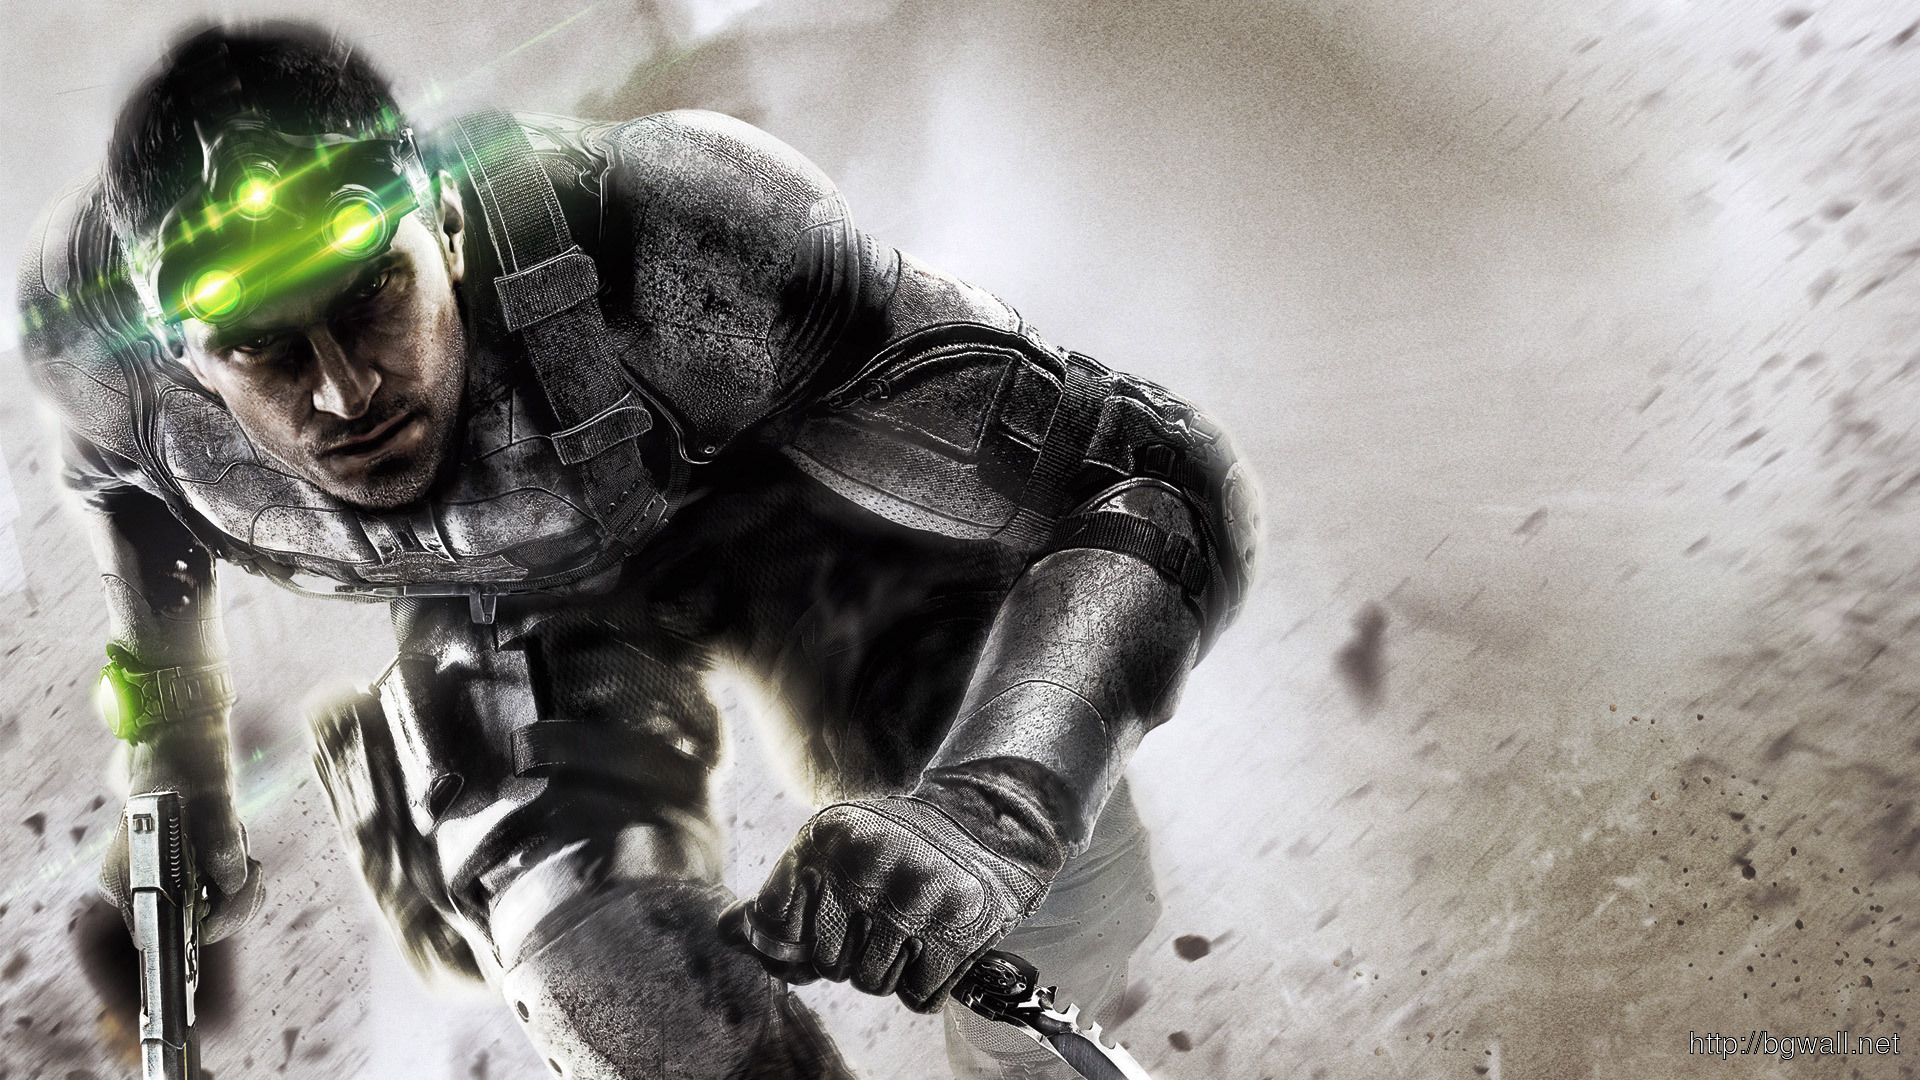 Wallpaper Hd Tom Clancys Splinter Cell Blacklist Game Full Size